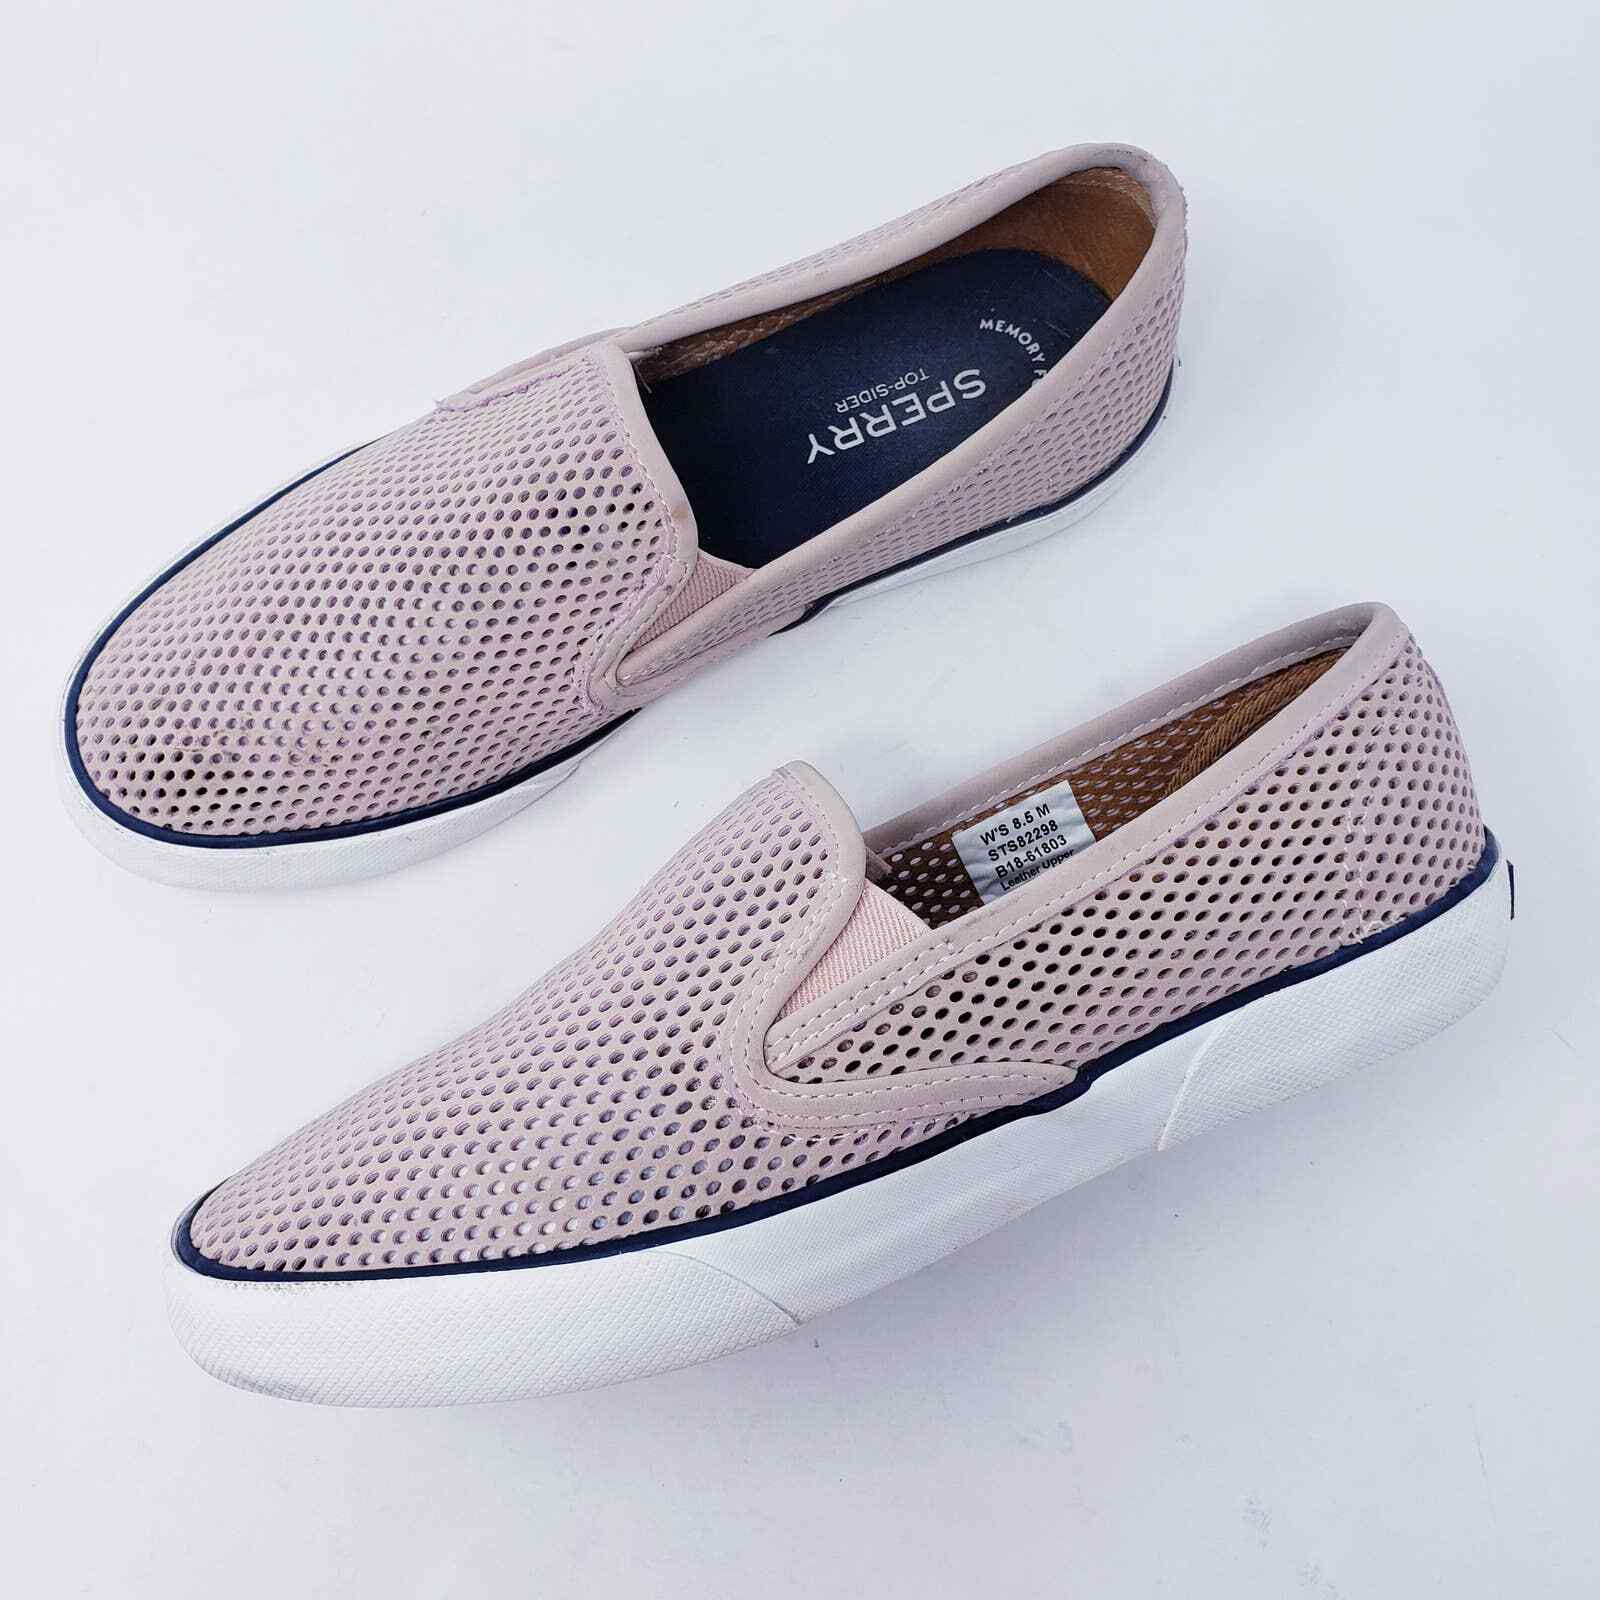 Sperry Women Size 8.5 Pier Side Perforated Leather Slip-On Sneaker Light Pink